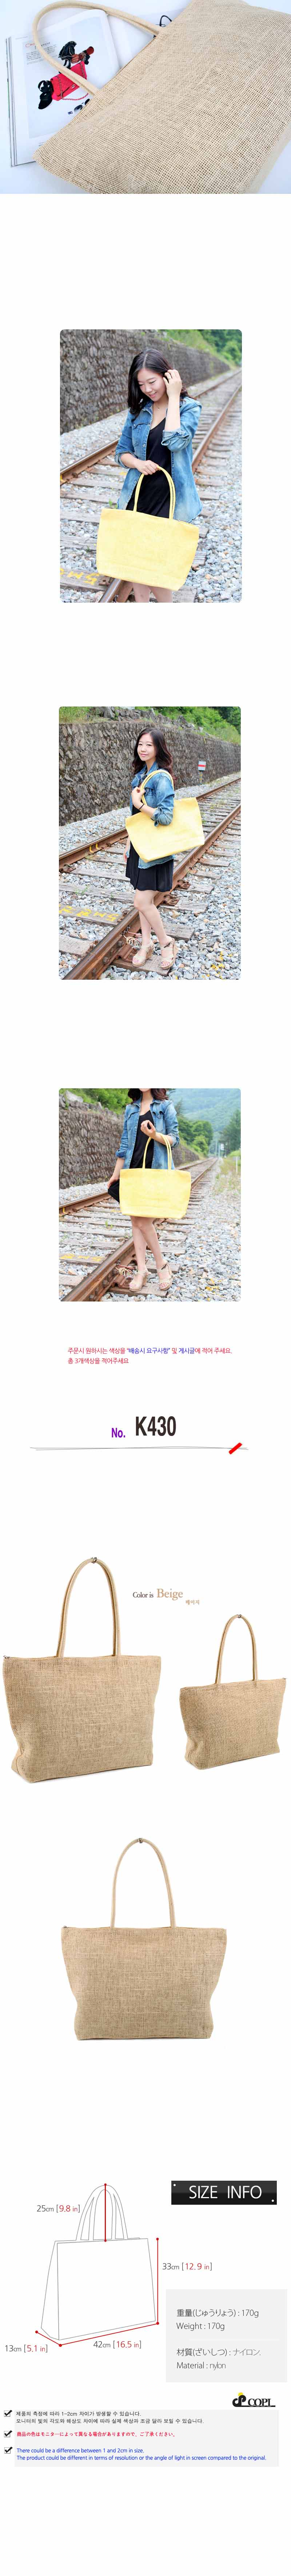 handbag no.K430view-M